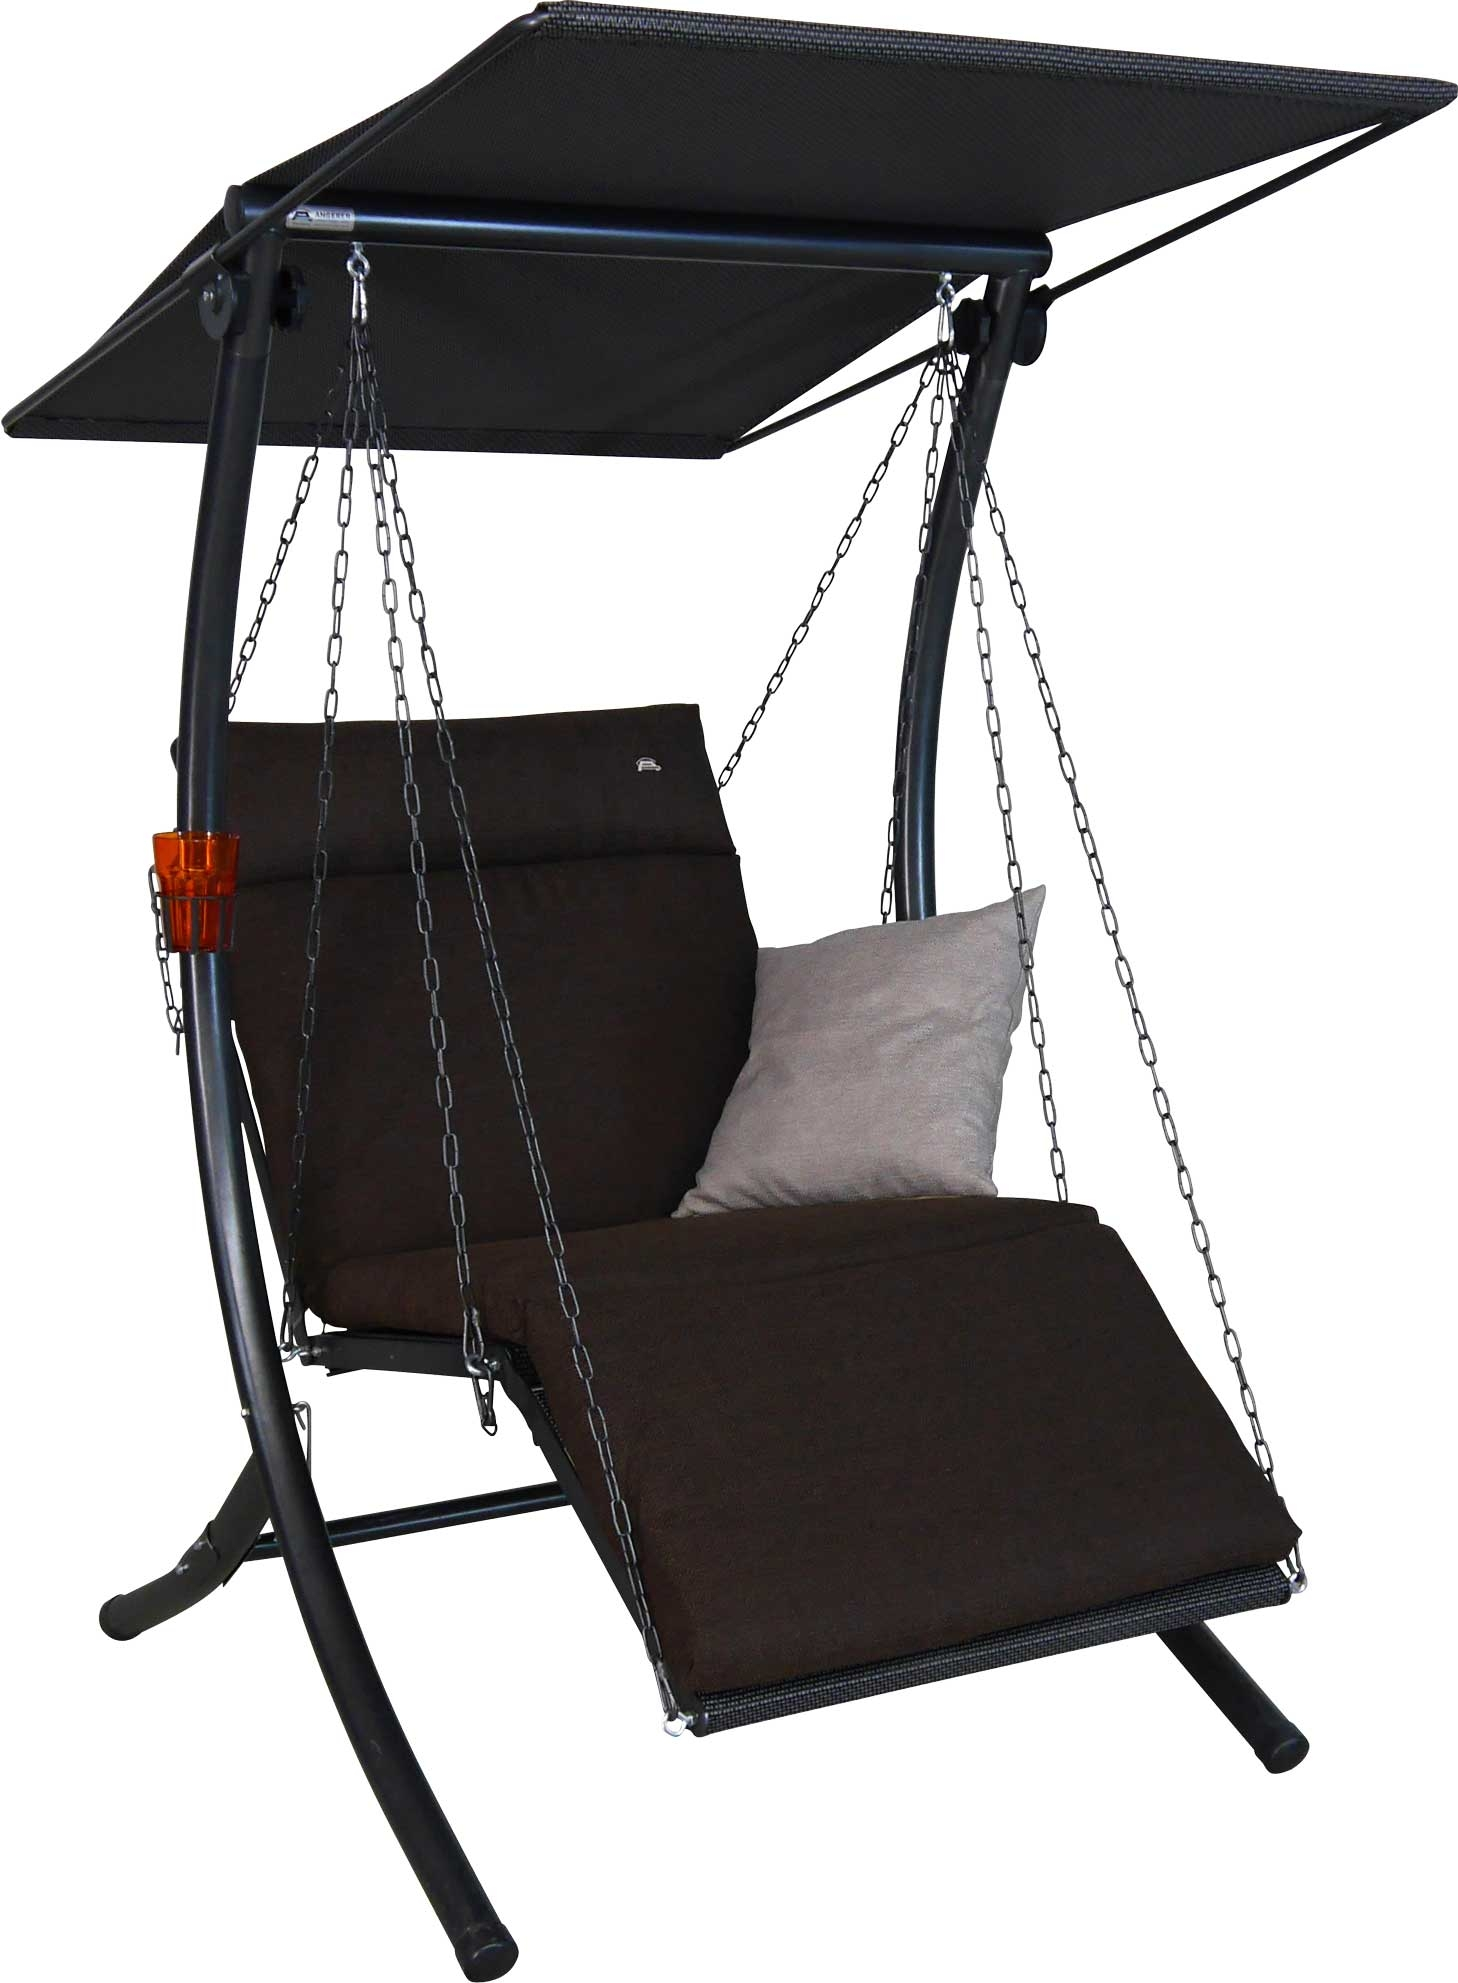 Angerer Hollywoodschaukel 1-Sitzer Swing Smart coffee